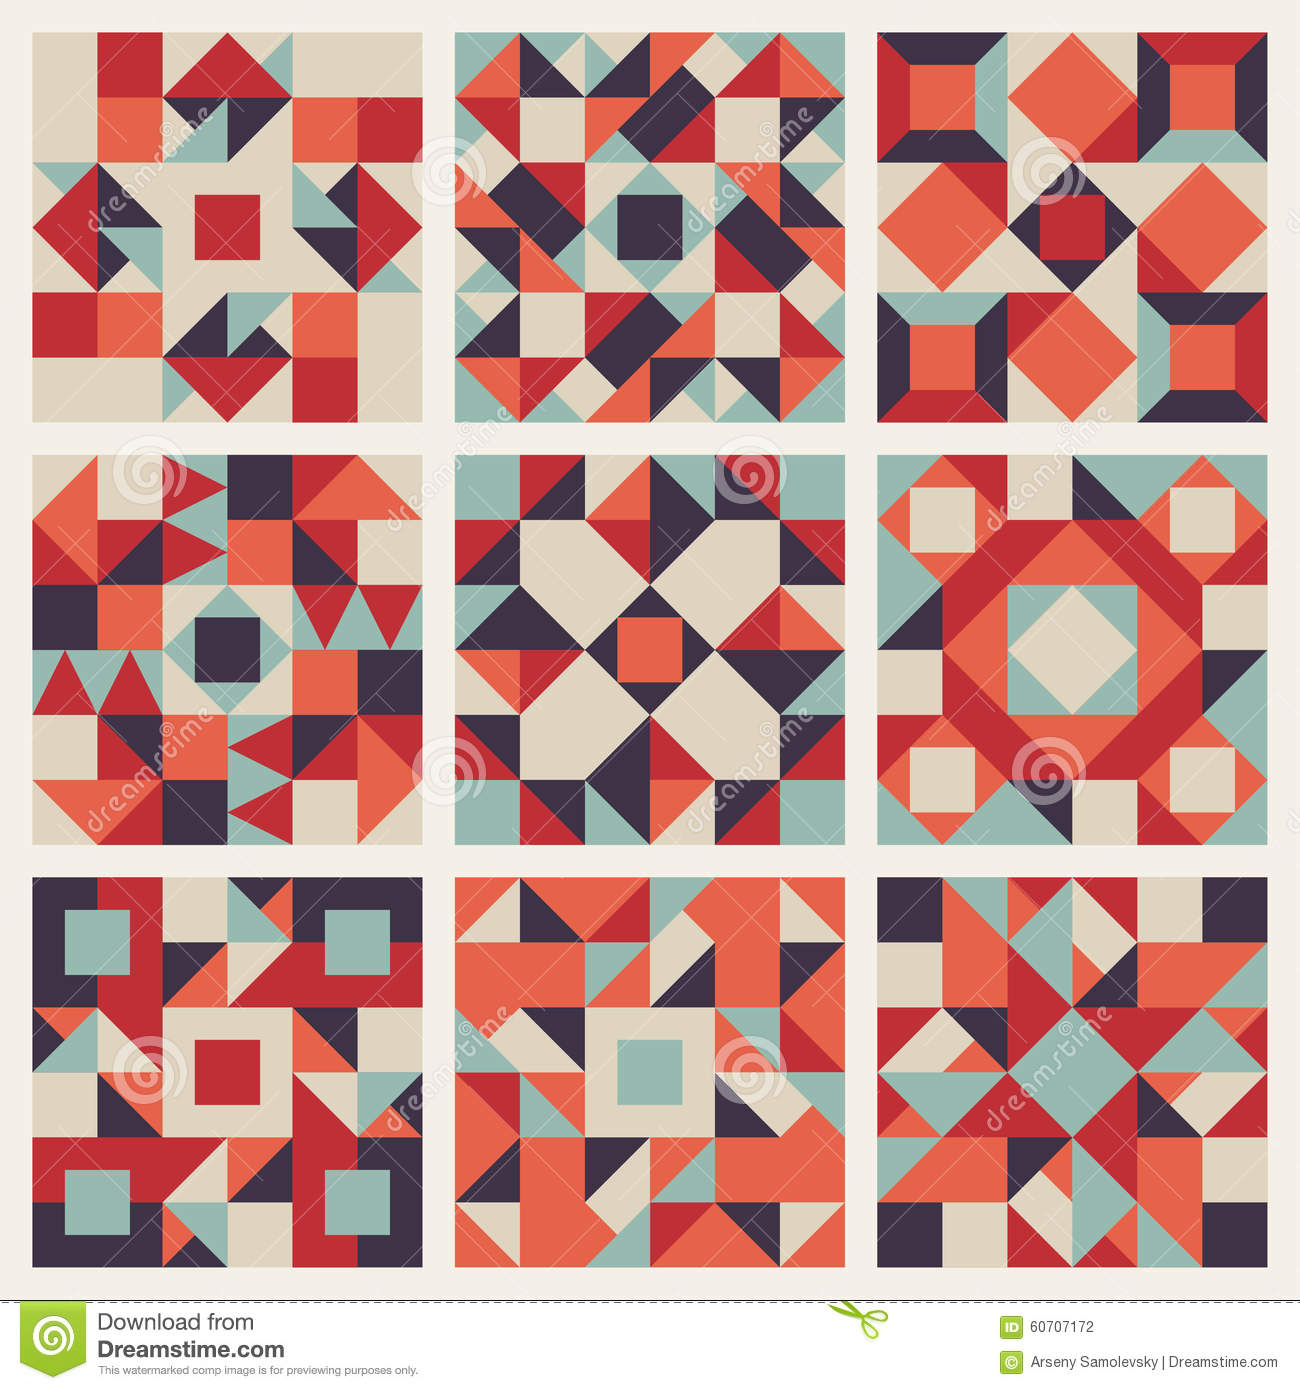 Vector Seamless Blue Red Orange Geometric Ethnic Square Quilt Pattern Collection